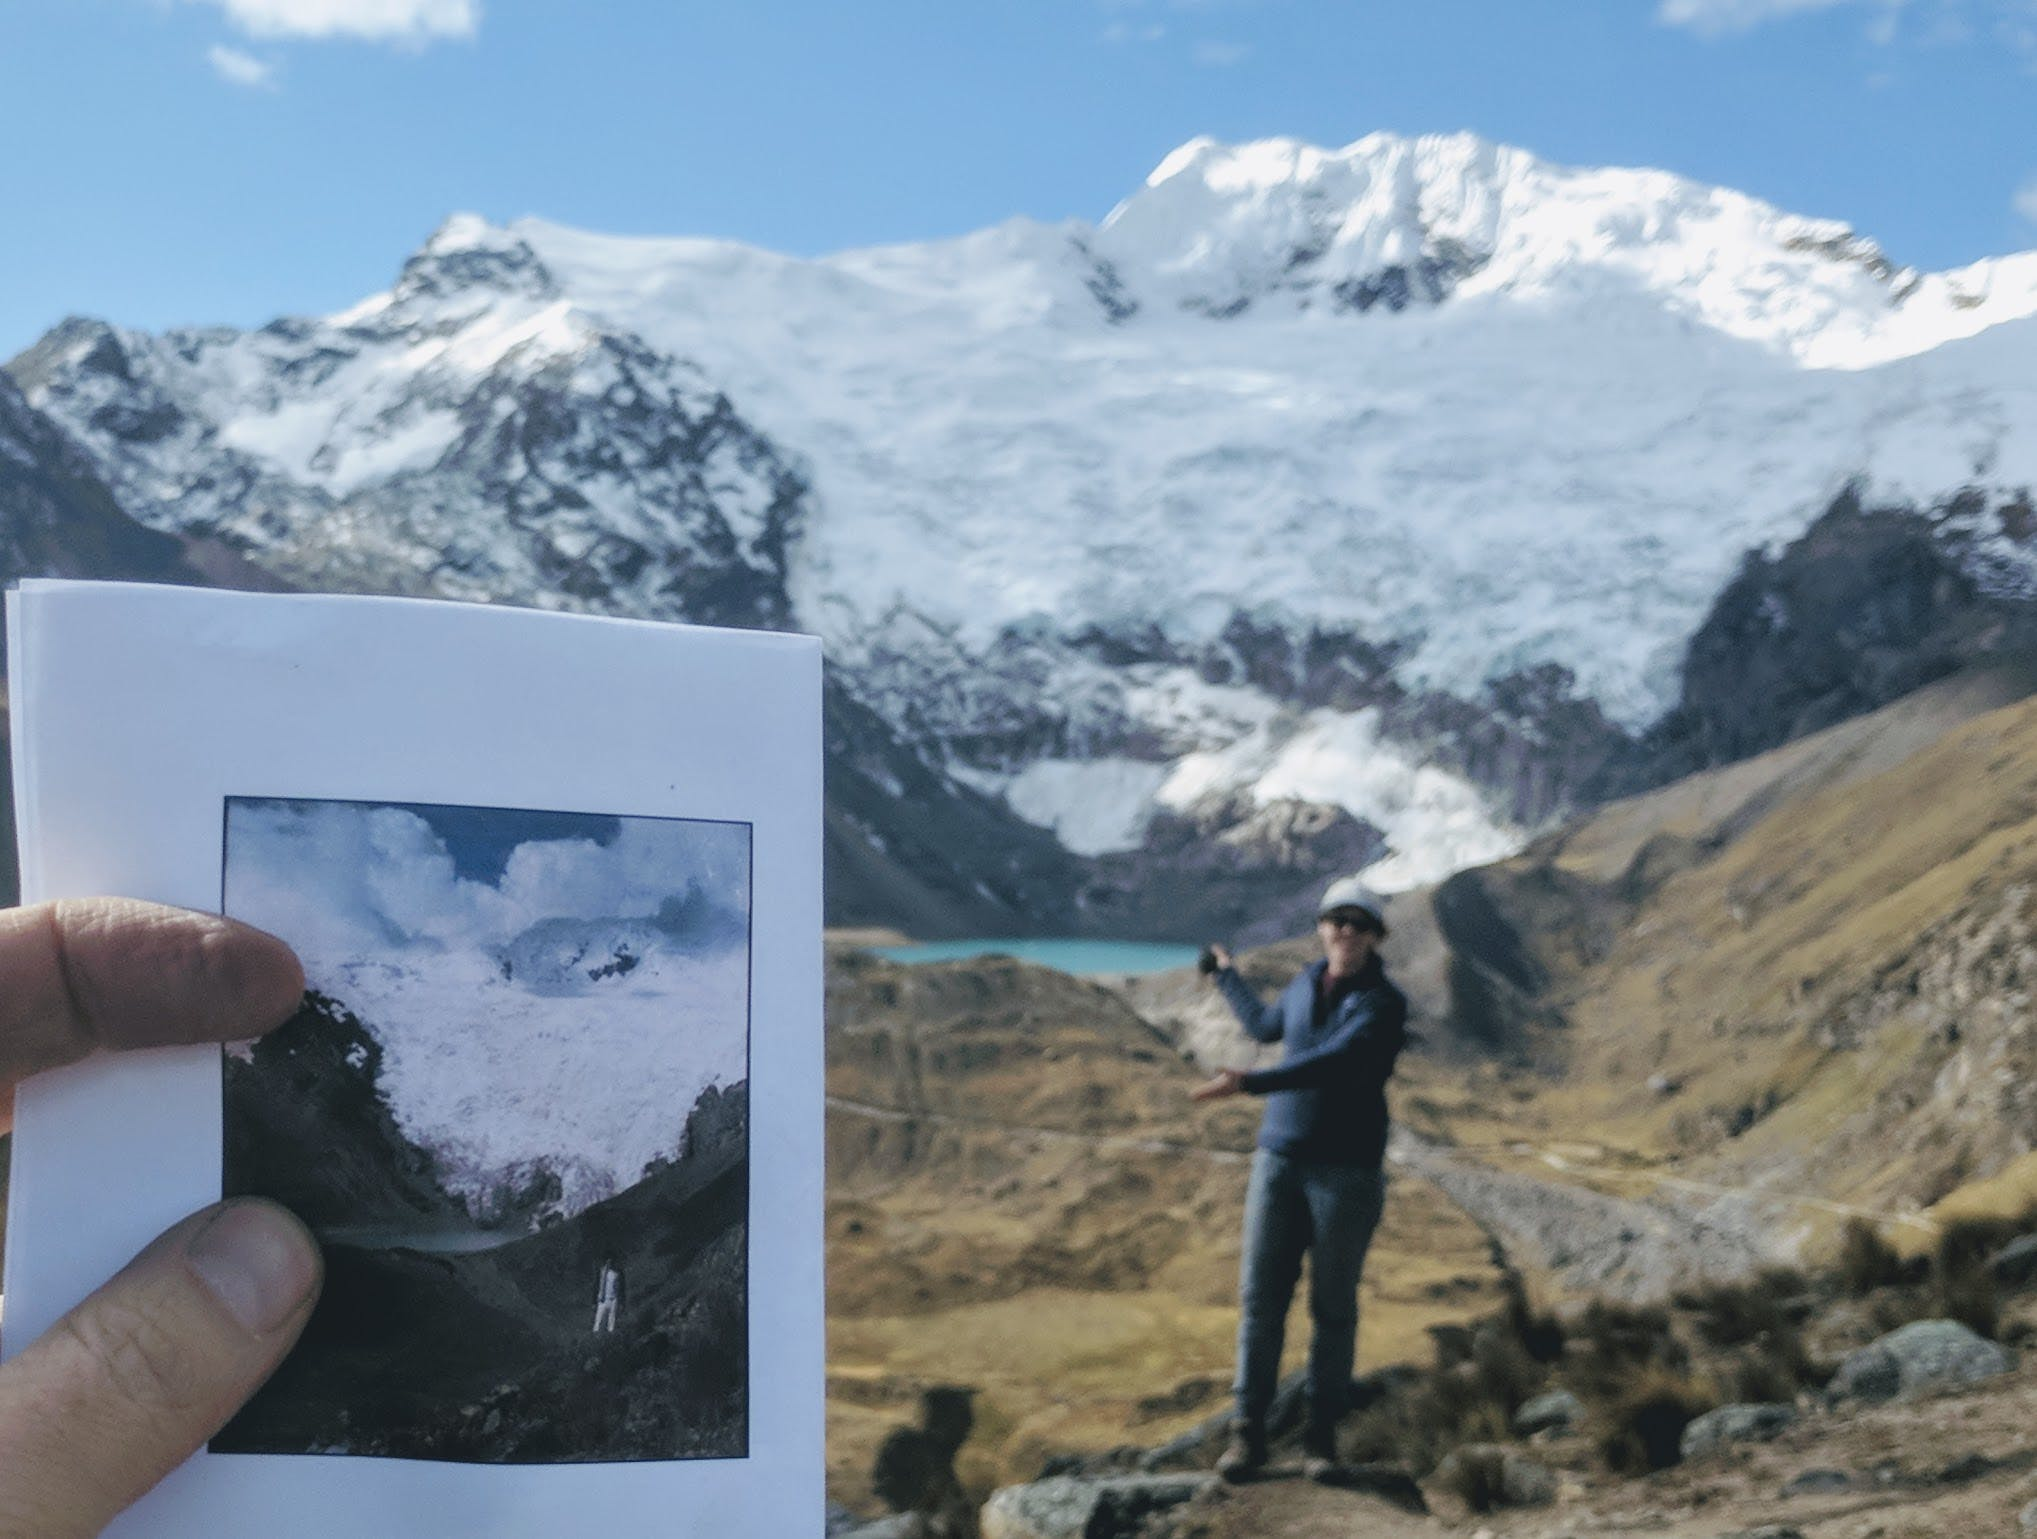 Somers recreates a photo from the 1980's of the Huaytapallana glacier